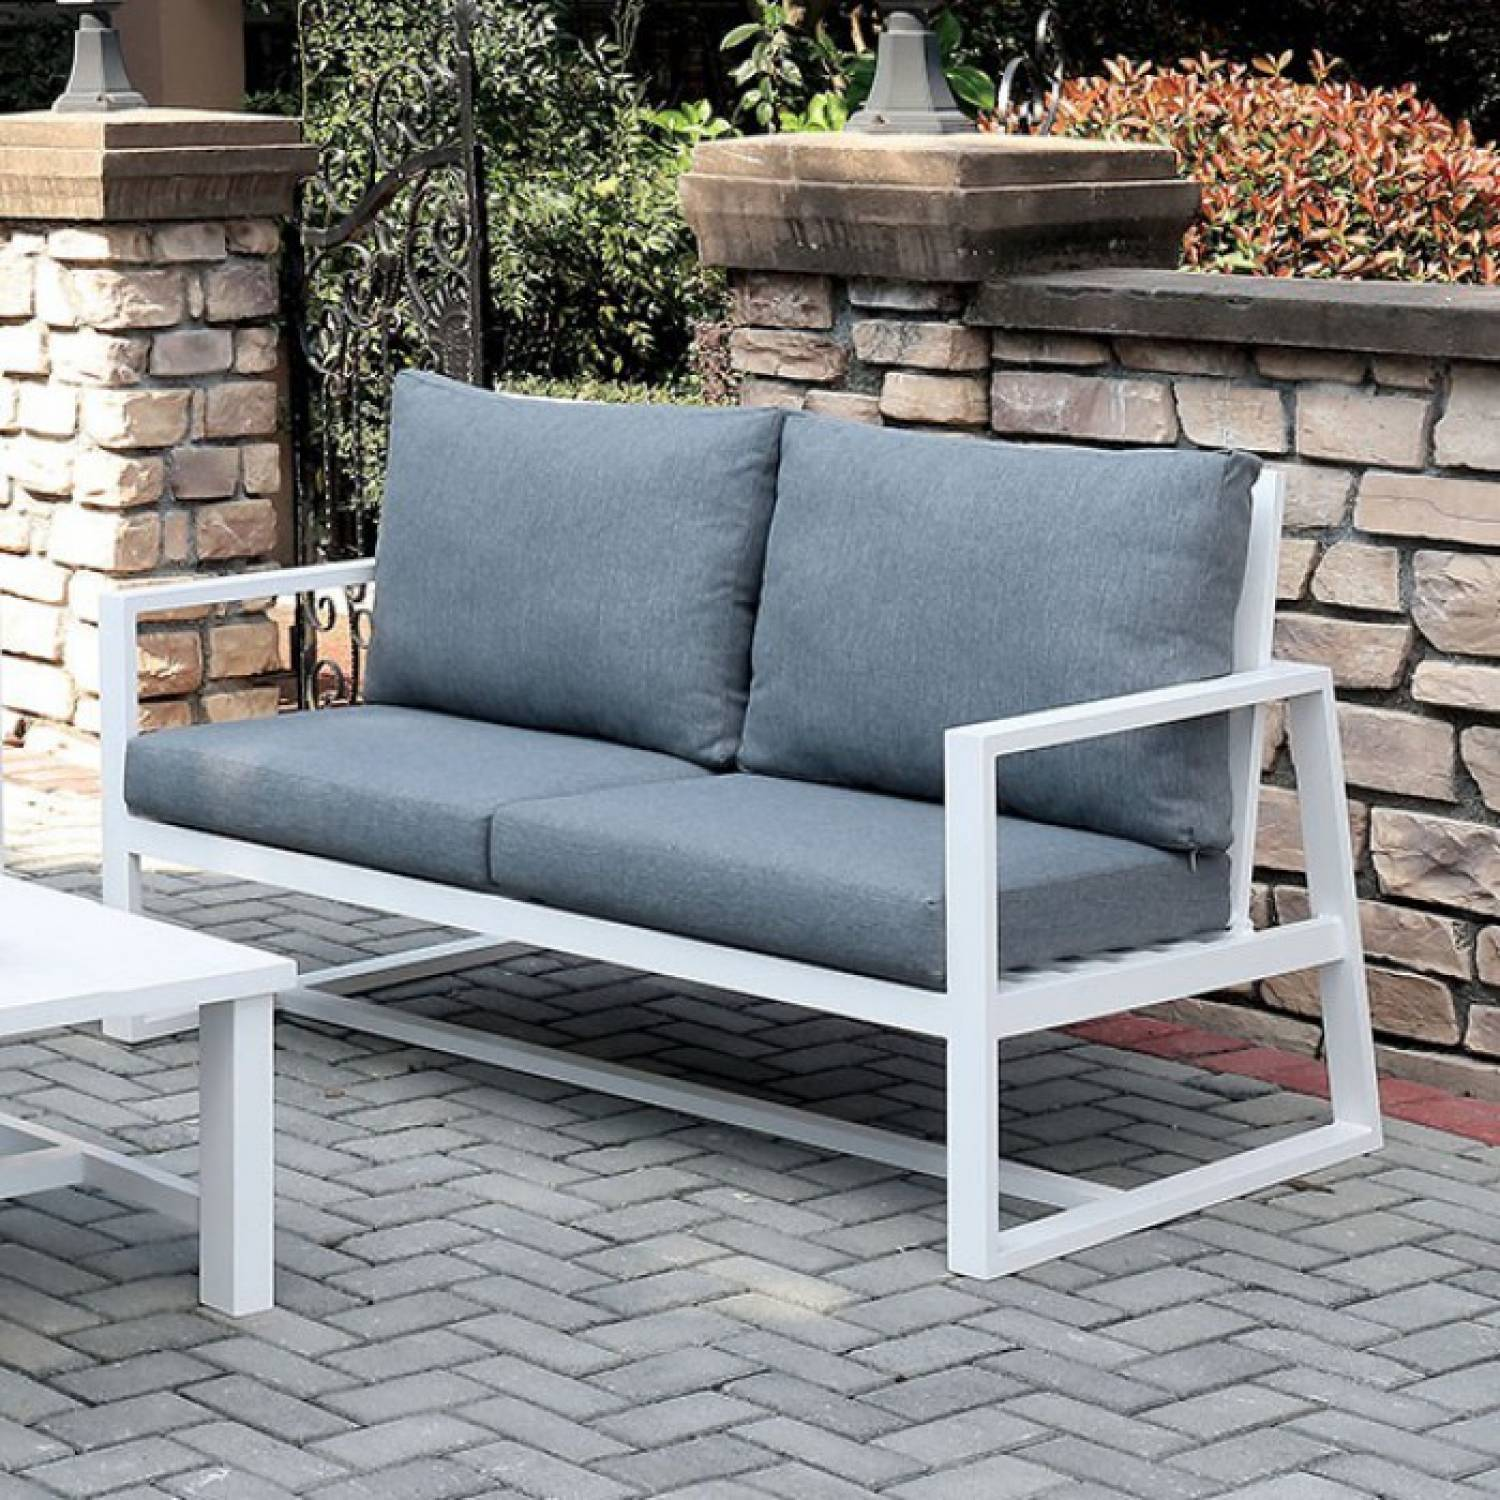 Cm Os2590gy Lv India Patio Love Seat